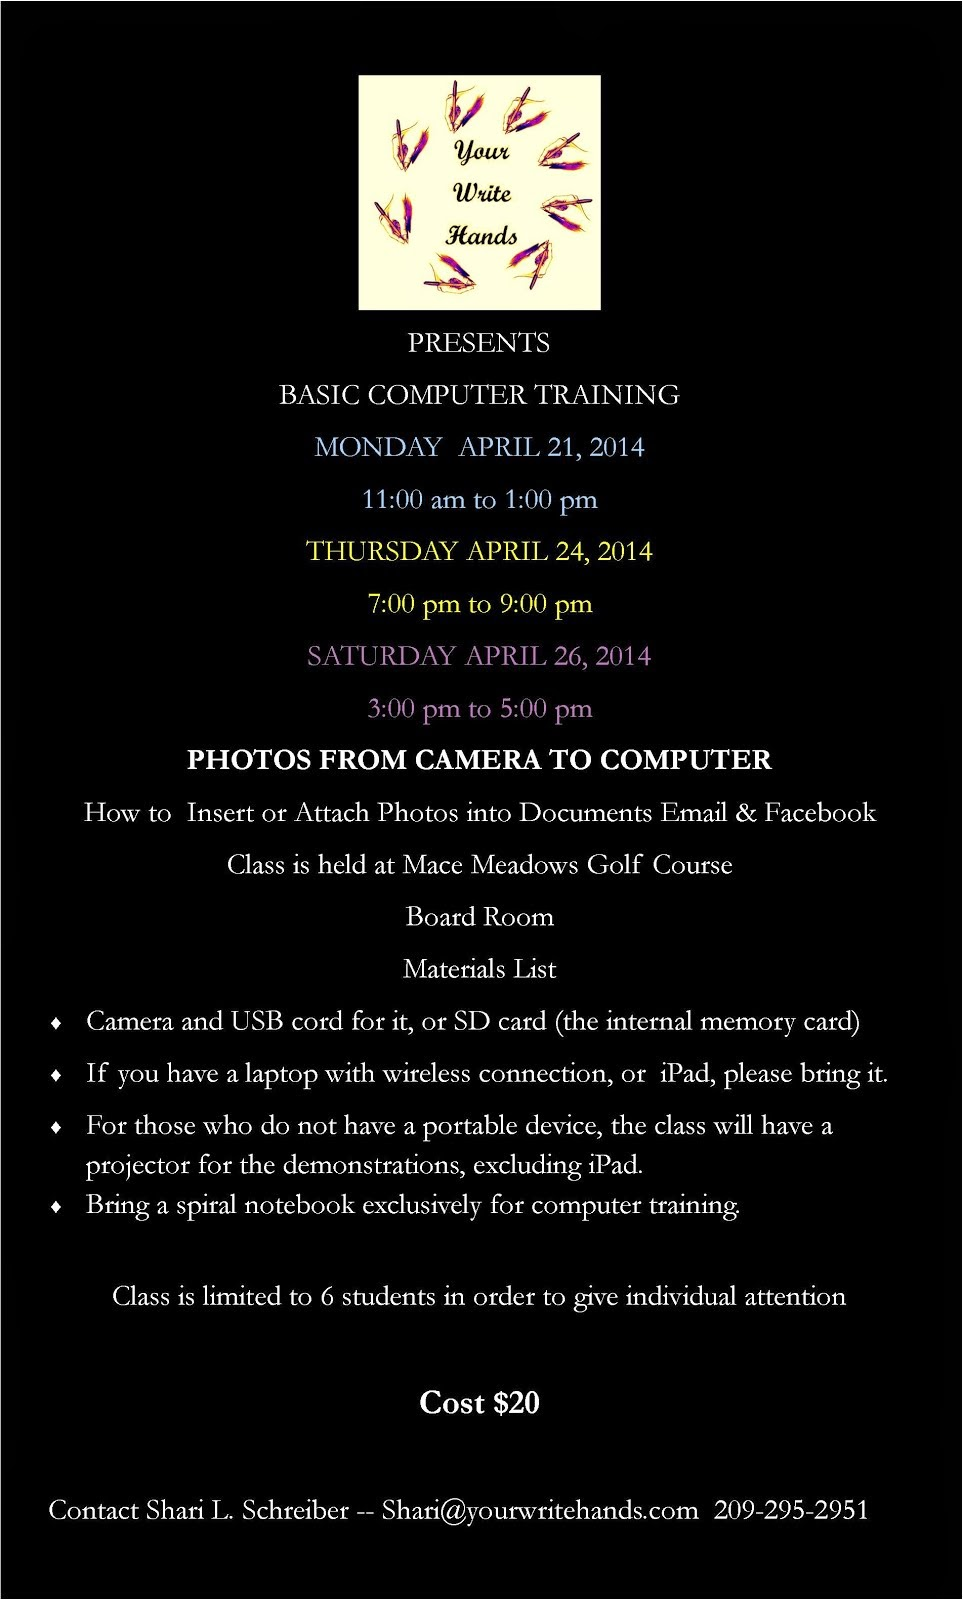 Basic Computer Training: From Photo to Computer - April 21, 24 & 26